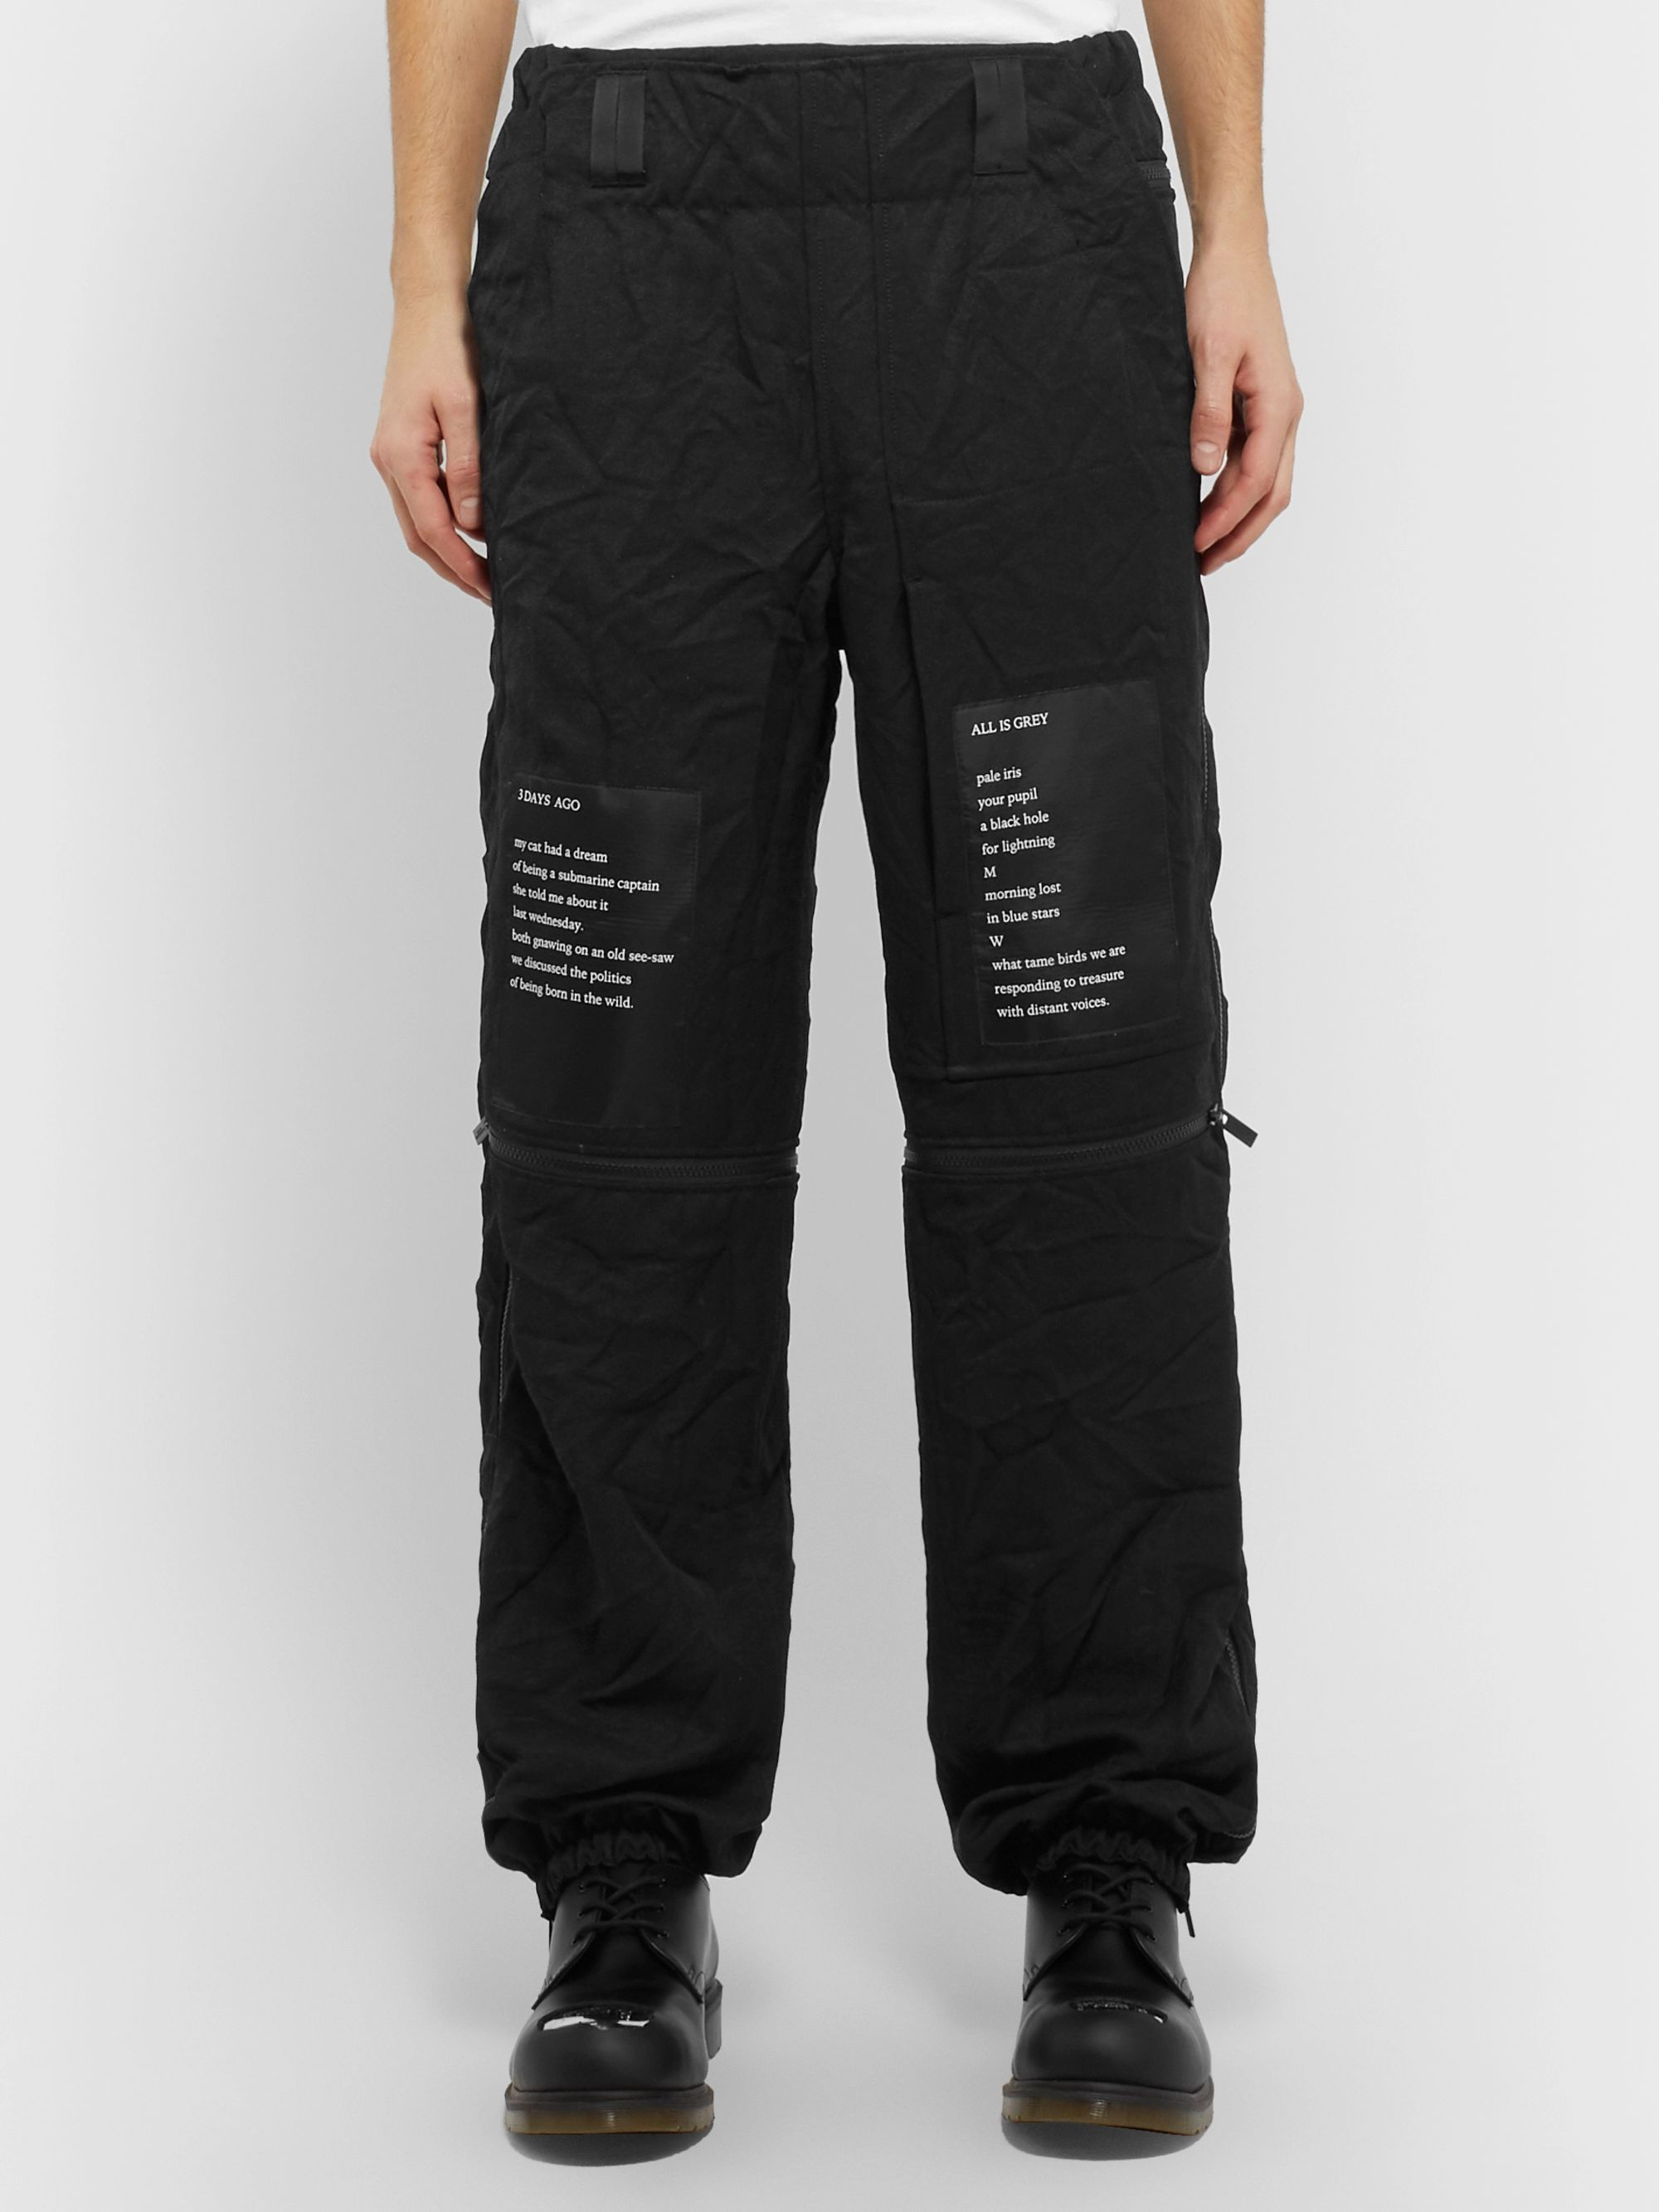 Submarine Black Zipper Pants